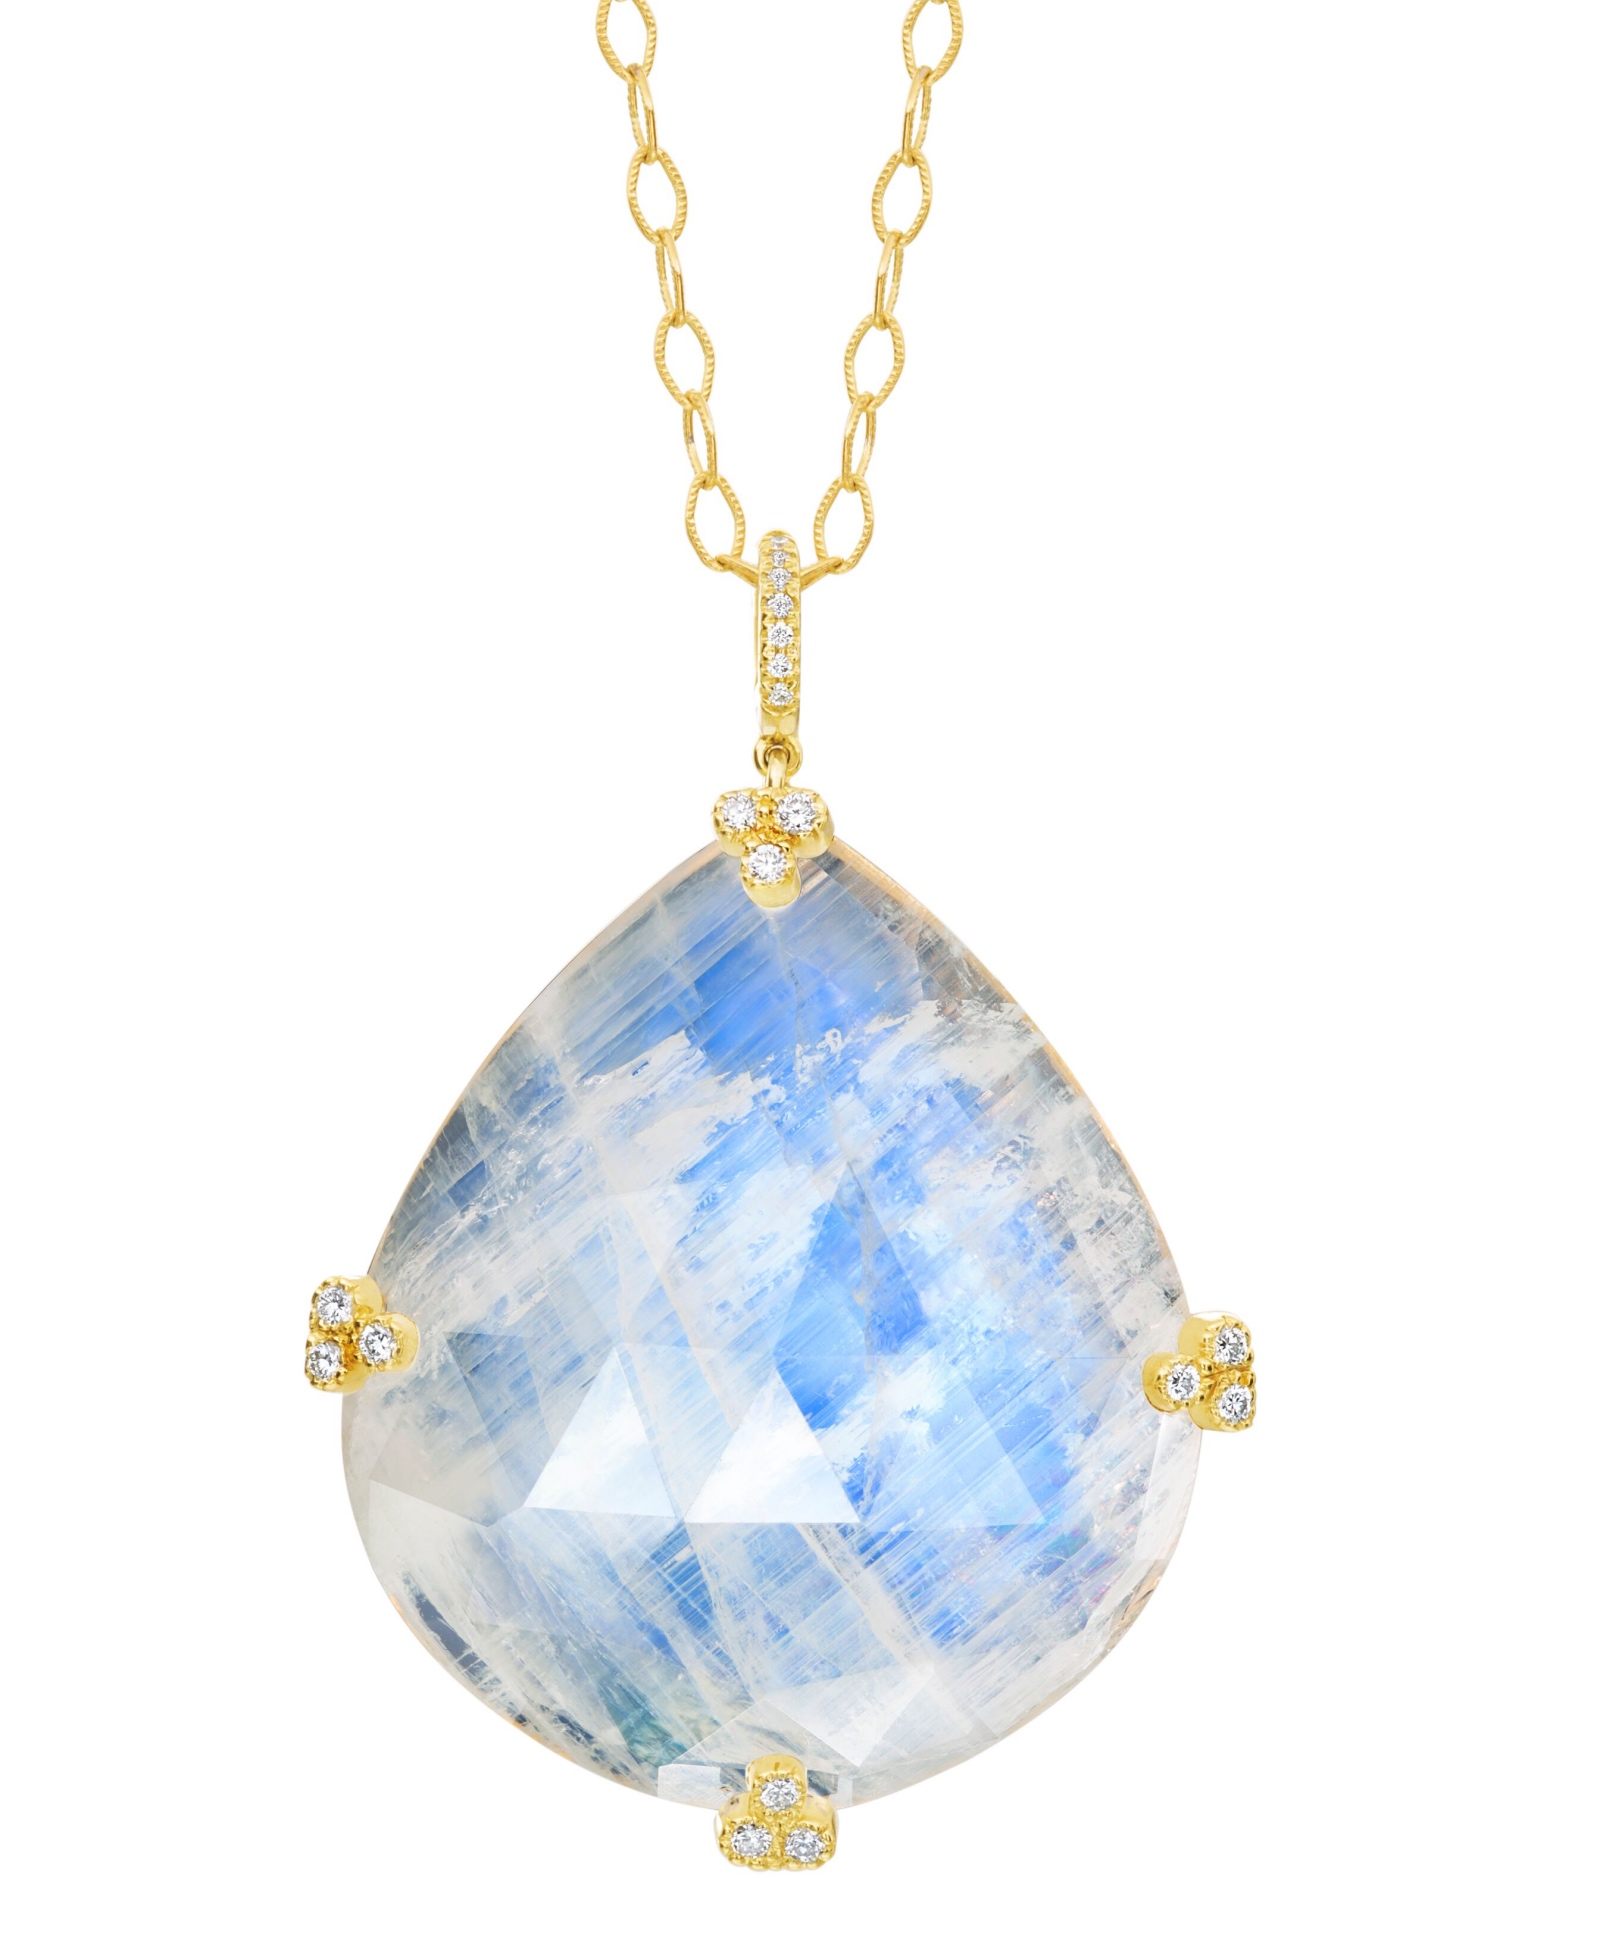 Sophie pendant with 84.64 ct. rainbow moonstone and 0.29 ct. t.w diamonds in 18K yellow gold